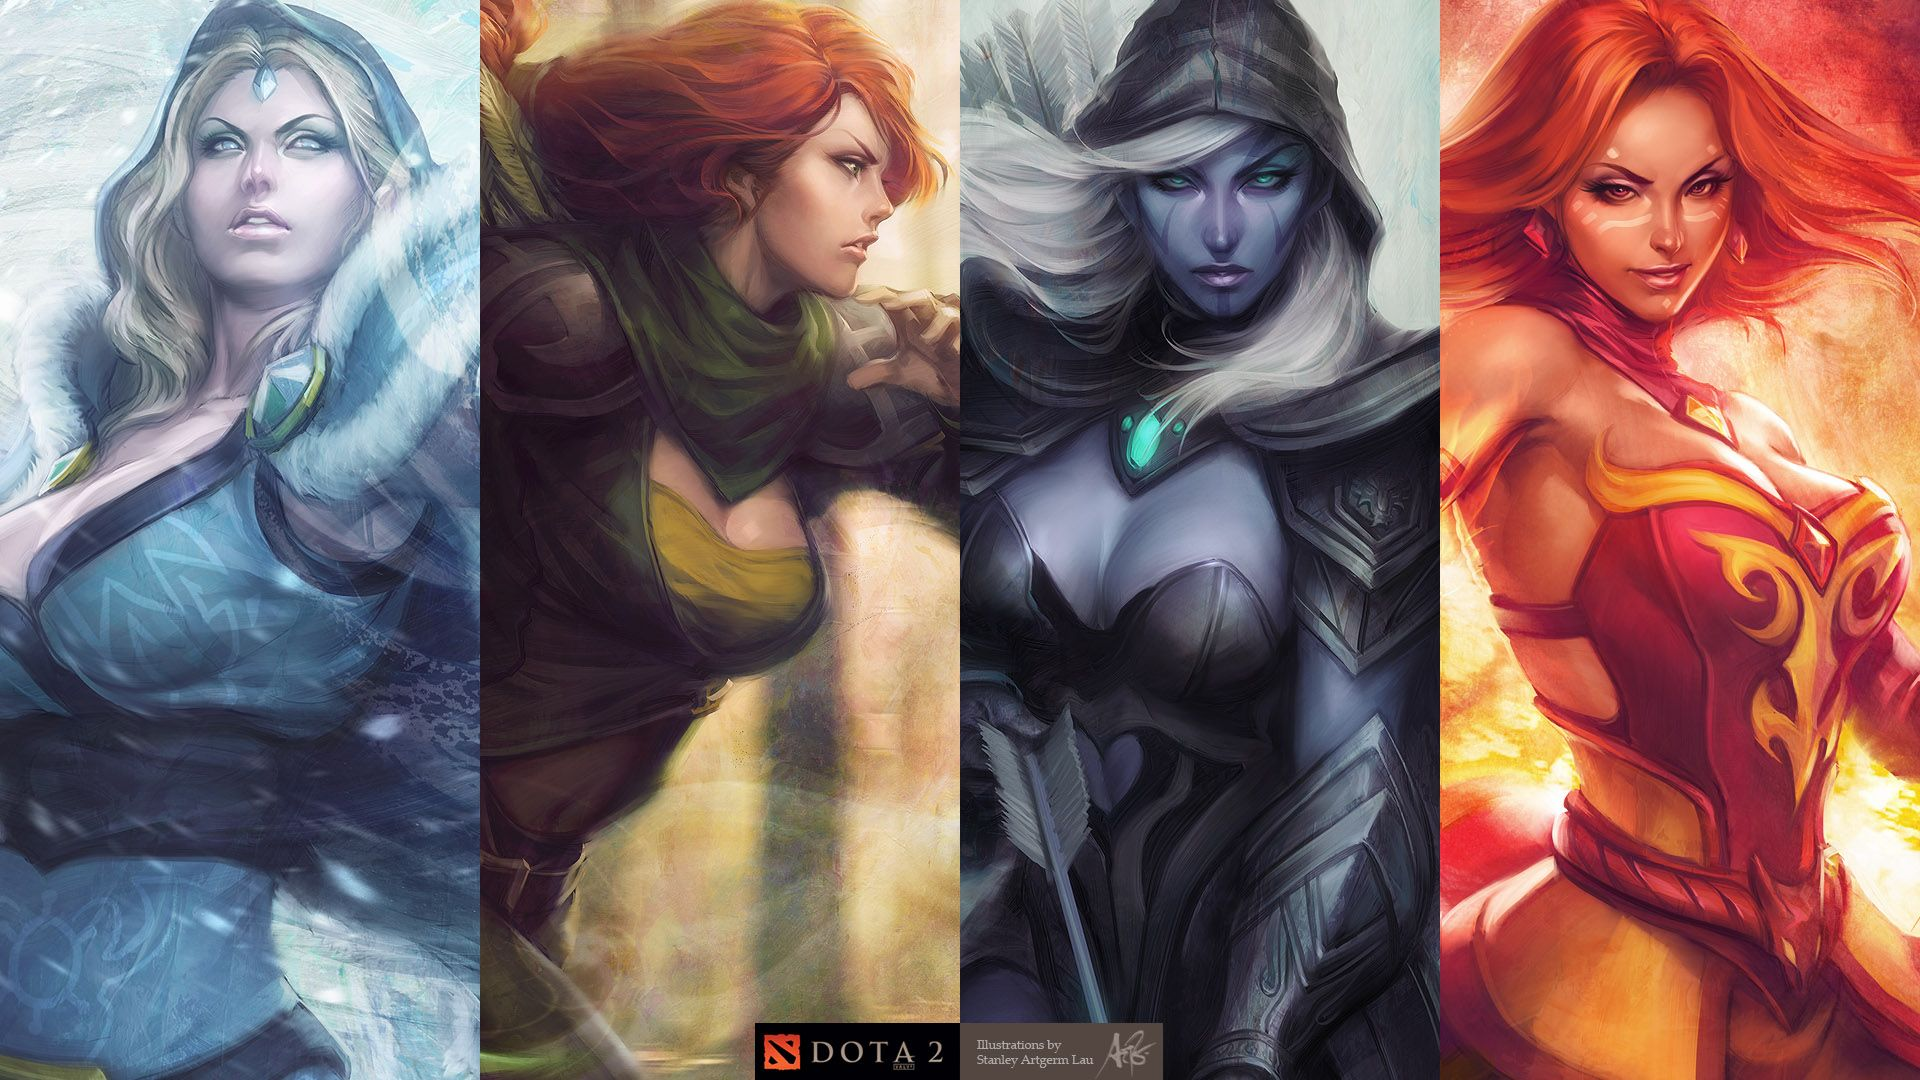 DotA2 Heroines by Artgerm.deviantart.com on @deviantART | Background images  wallpapers, Fantasy art, Art